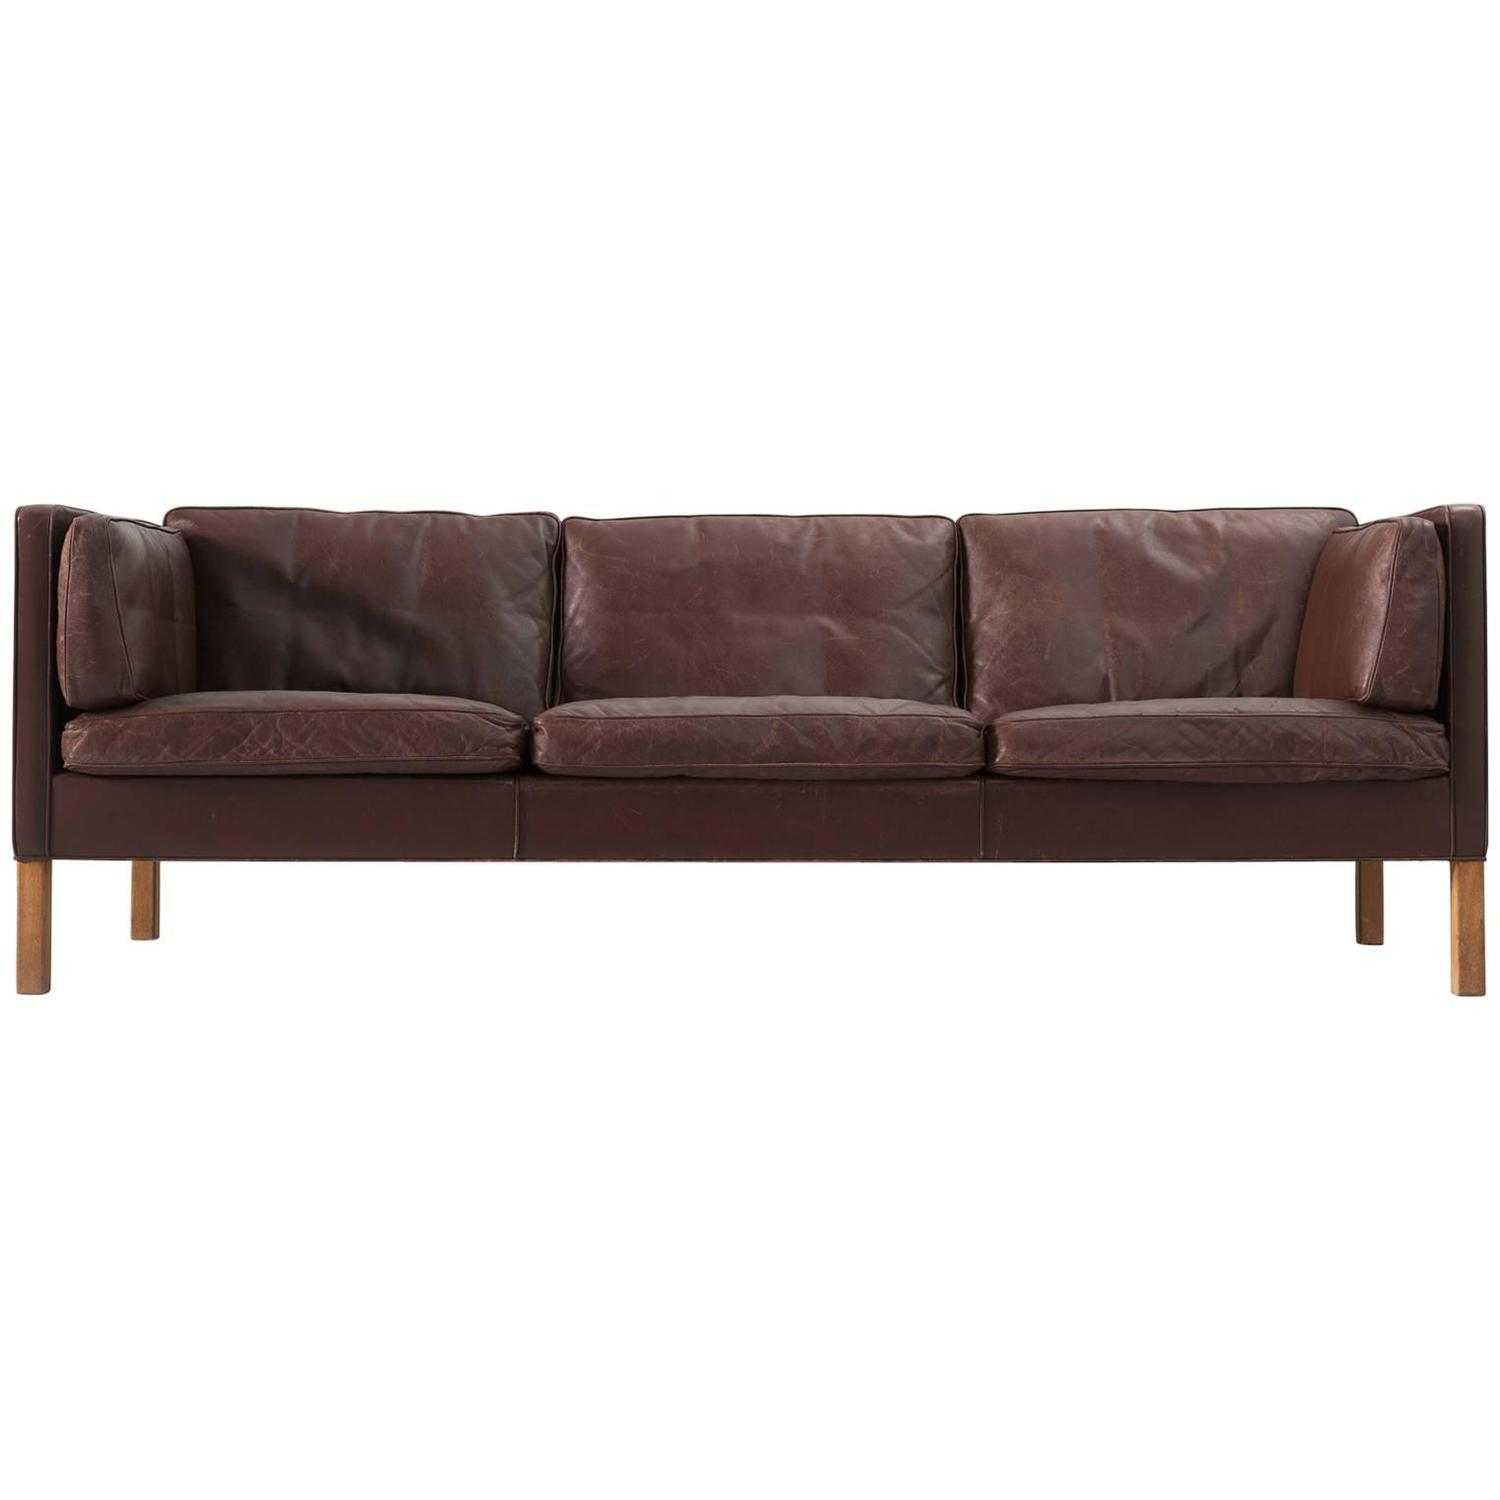 French Mid Century Chesterfield Sofa in dark brown For Sale at 1stdibs